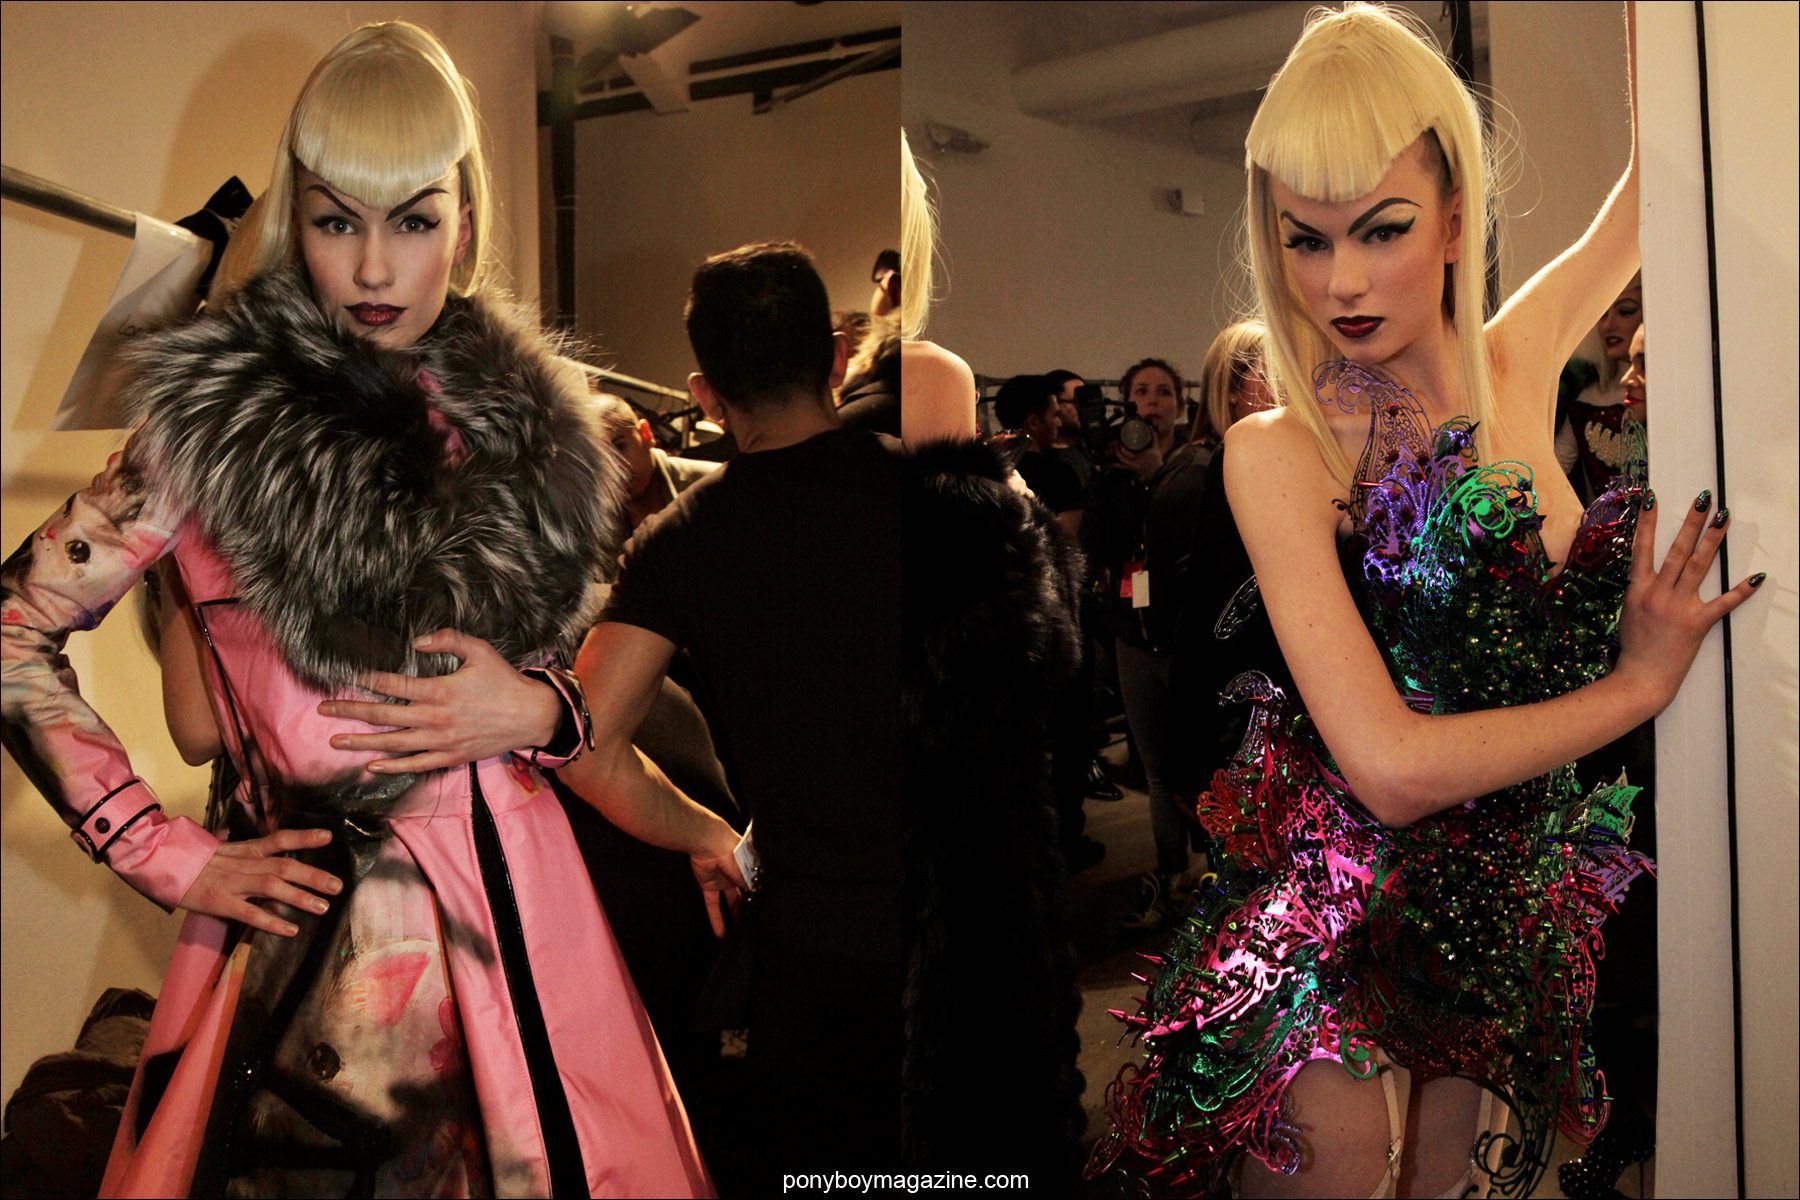 Beautiful blonde models photographed by Alexander Thompson, backstage at The Blonds A/W 2014 fashion show. Photographed for Ponyboy Magazine.